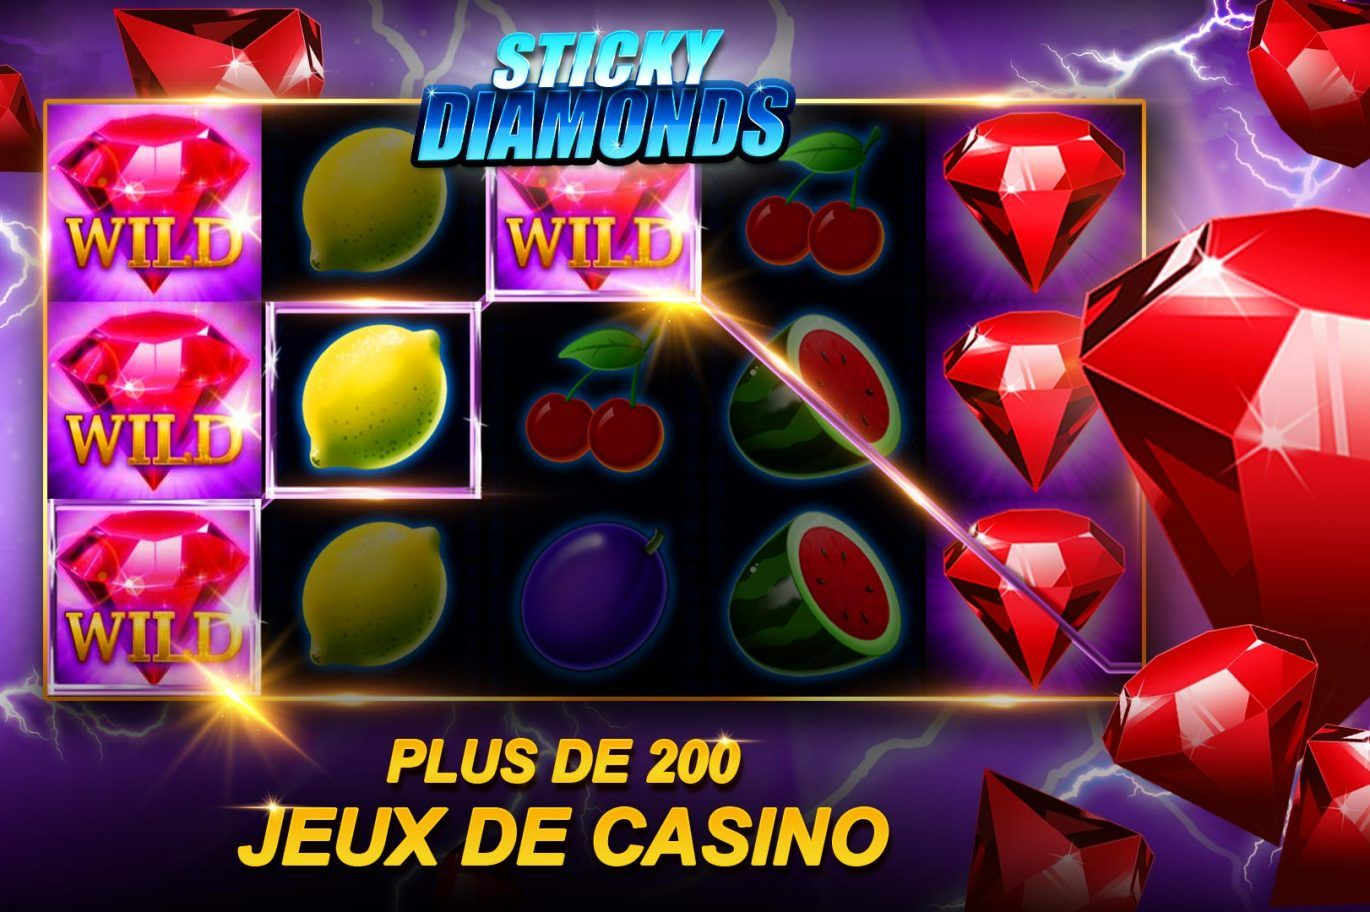 Free slots games for fun only